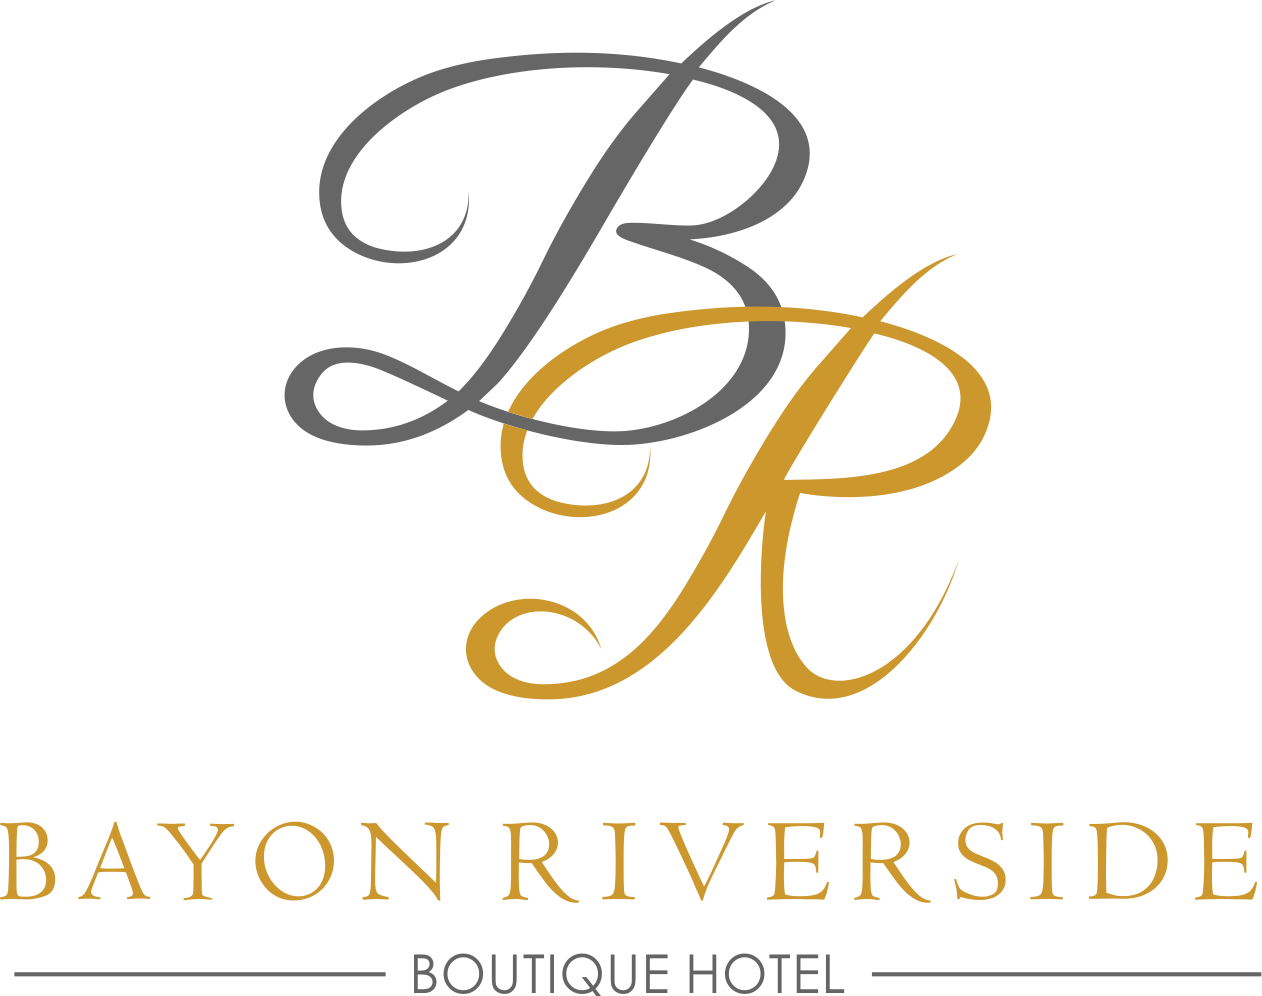 Bayon Riverside Boutique Hotel